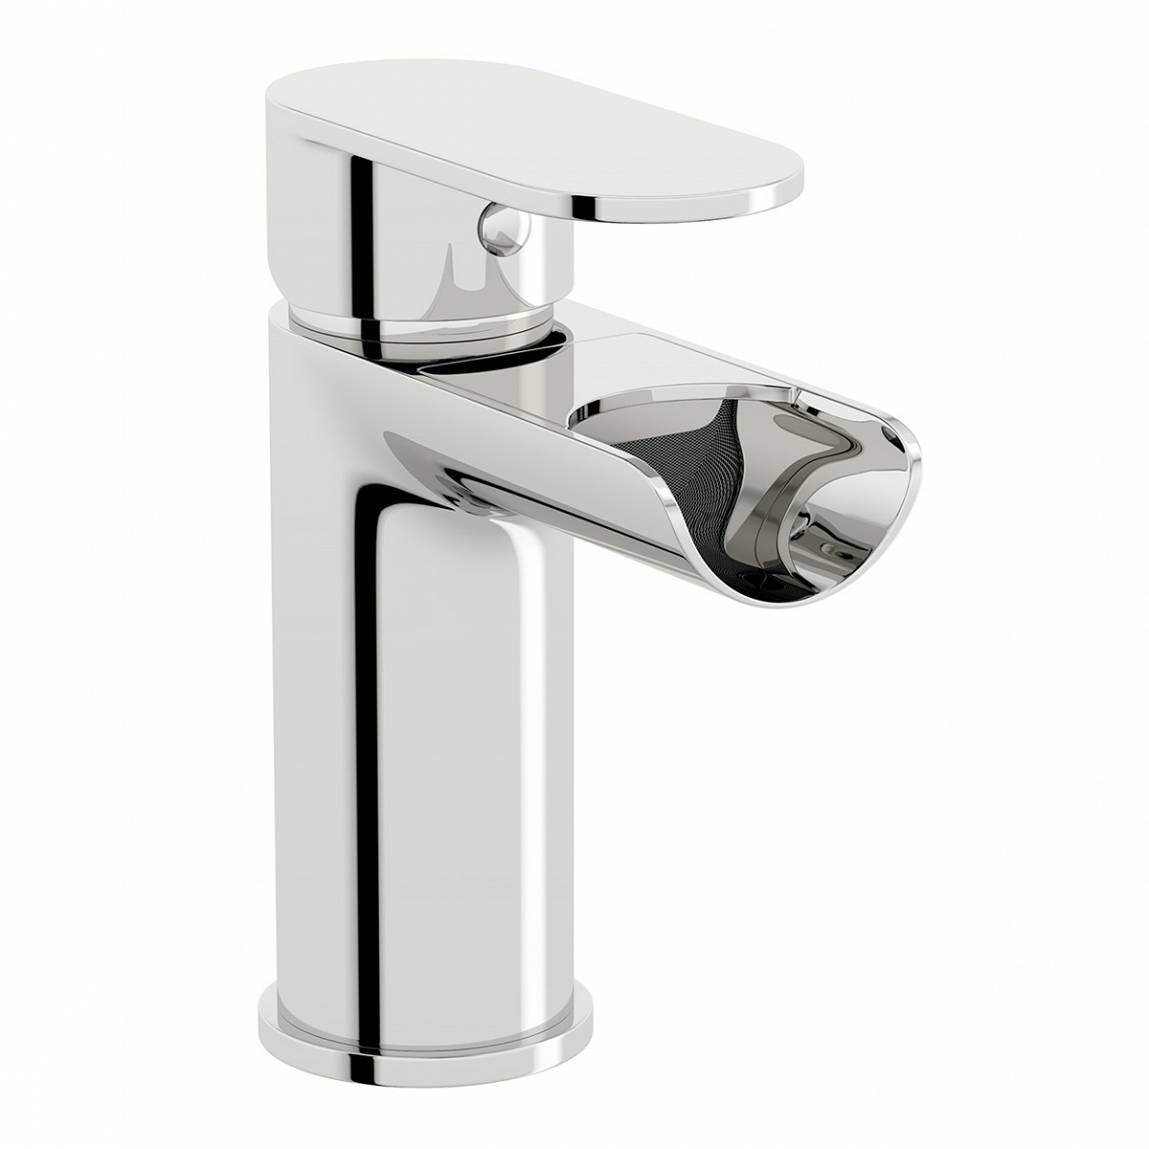 Orchard Eden waterfall basin mixer tap offer pack